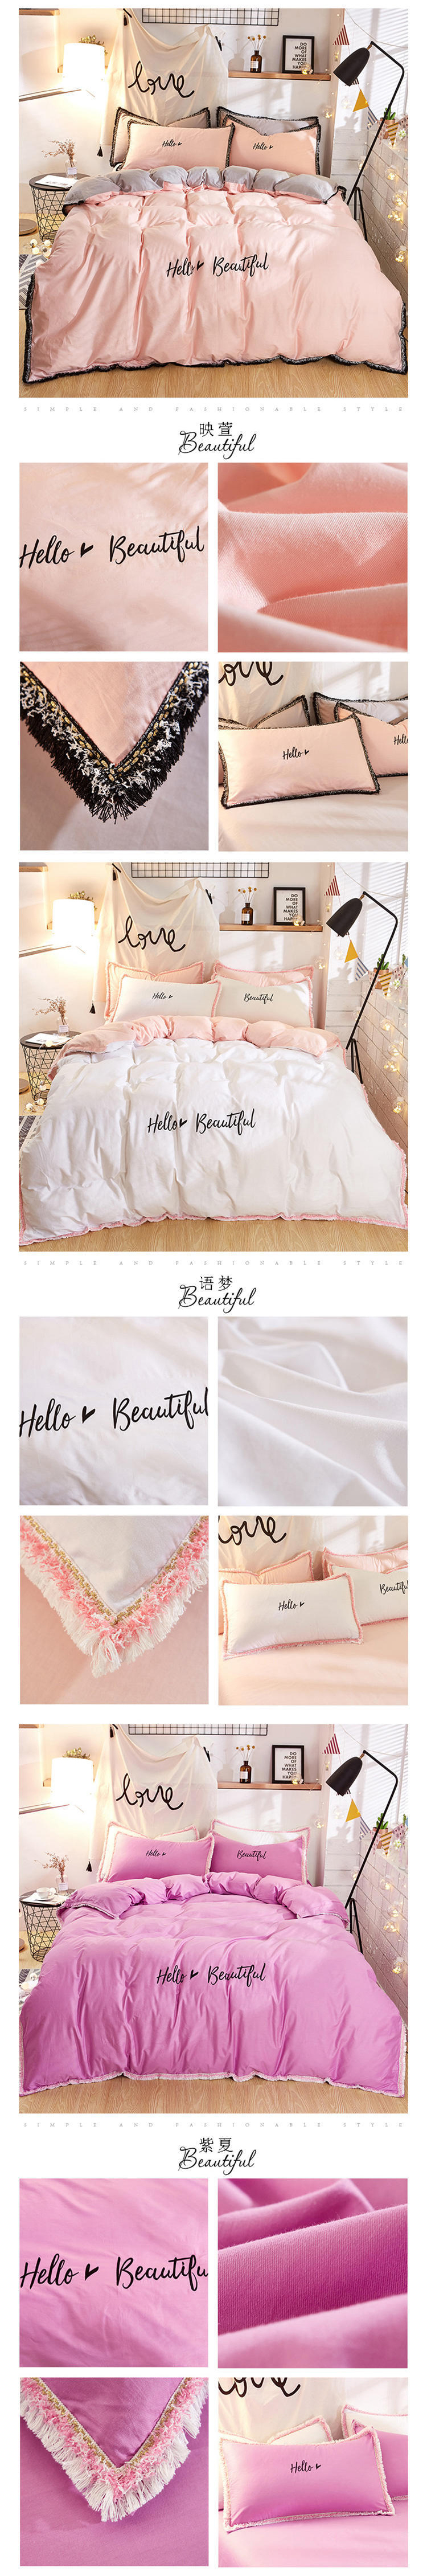 2018 bedding set queen size pure cotton embroidered ropa de cama bed linen cotton duvet cover simple fashion home textiles 7